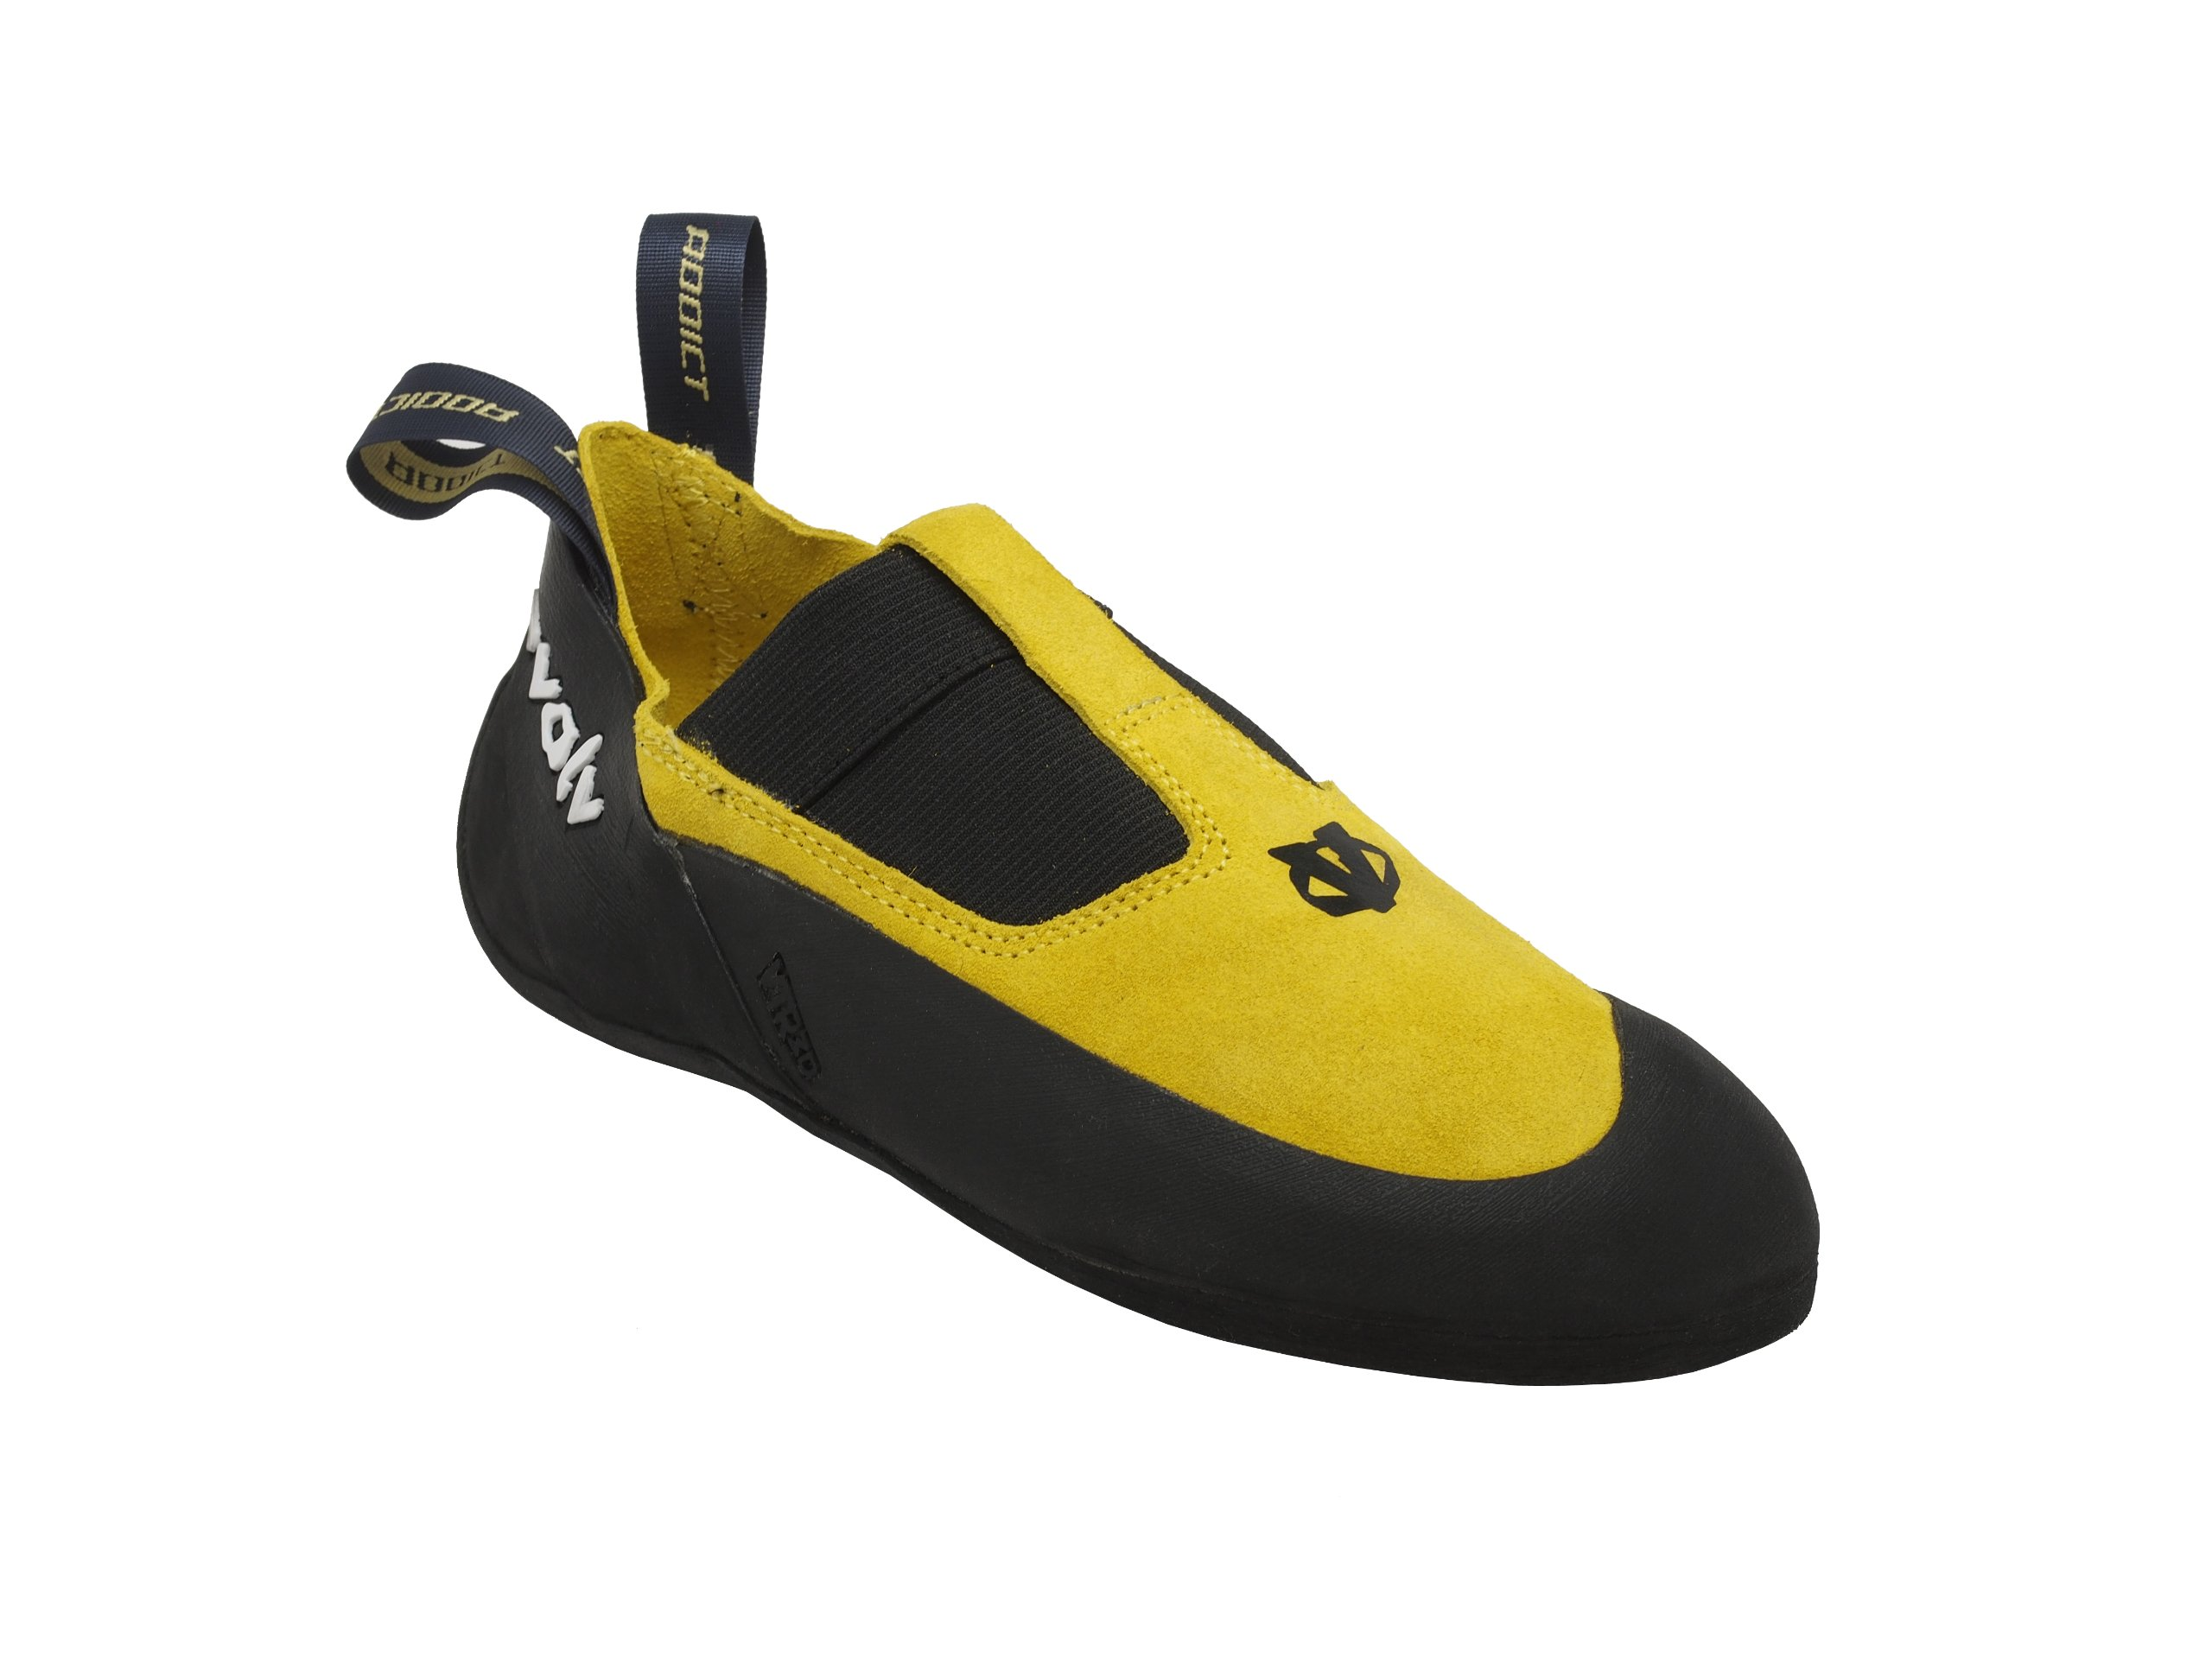 Evolv Addict Climbing Shoe - Yellow 13